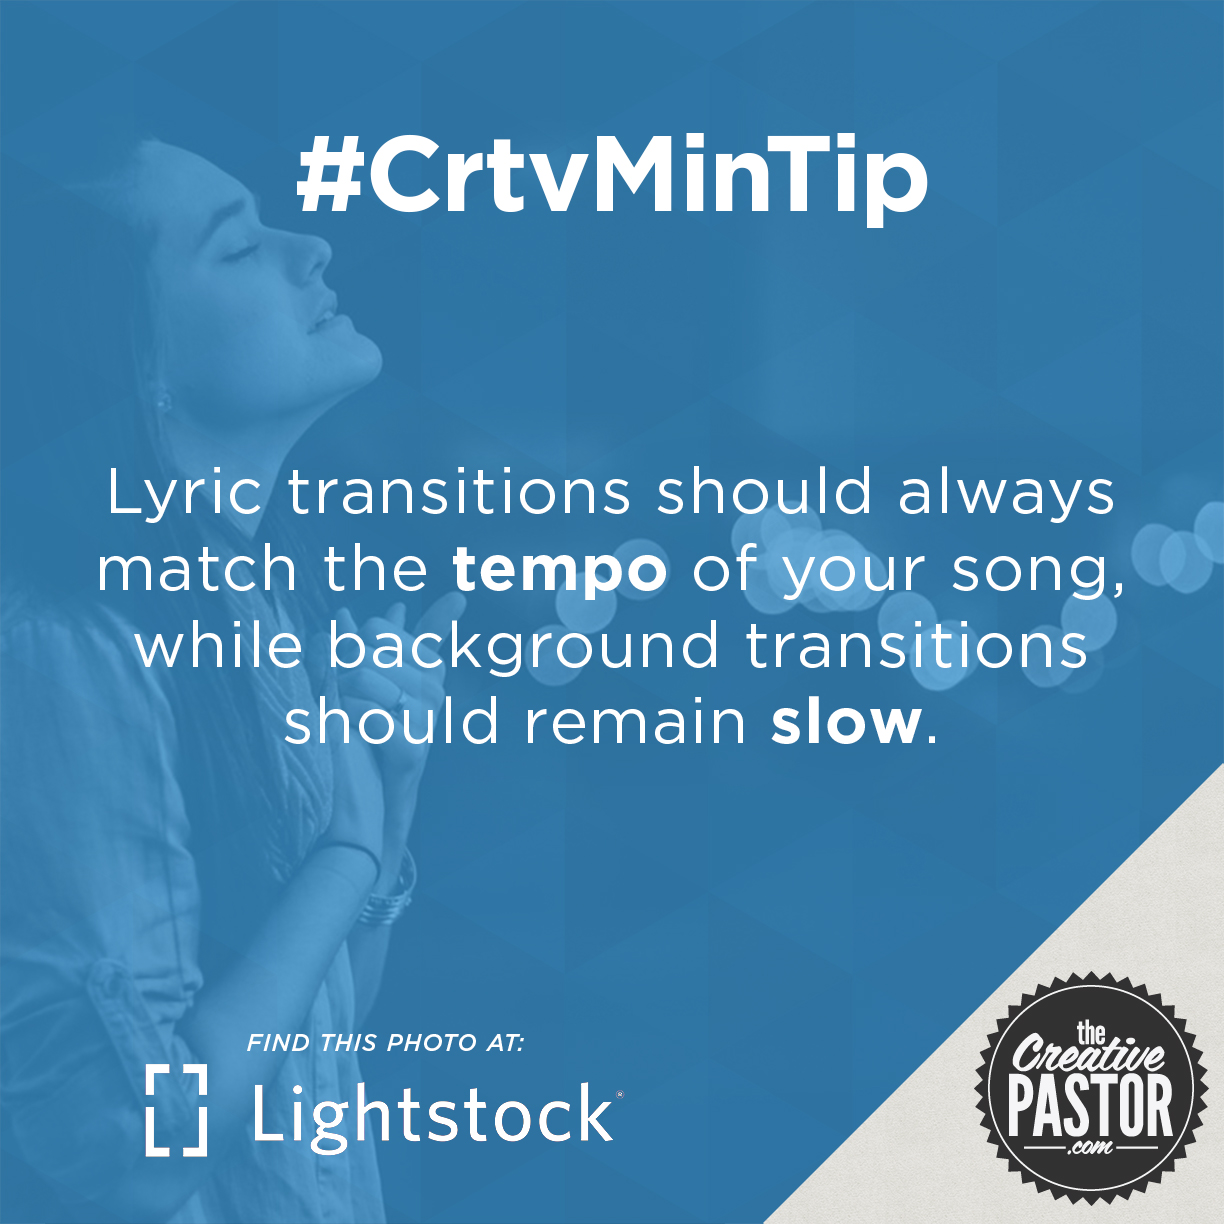 Lyric transitions should always match the tempo of your song, while background transitions should remain slow.